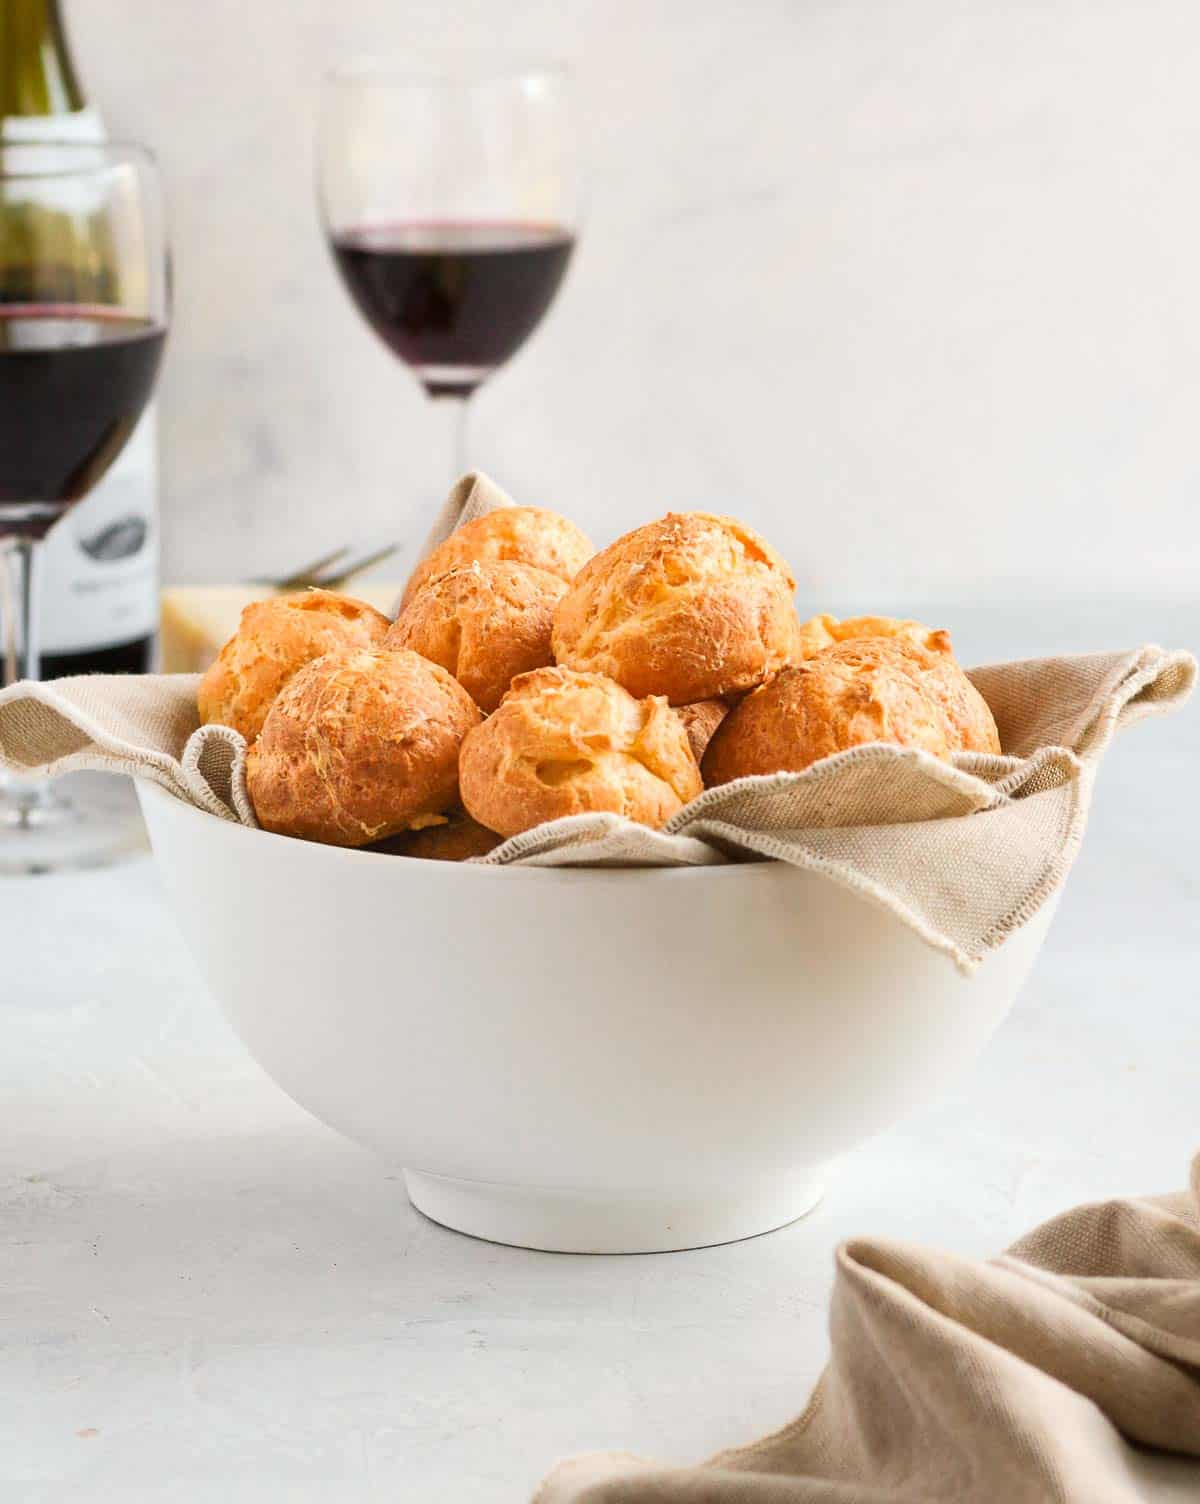 Gougeres in a white bowl with wine glasses in the background.